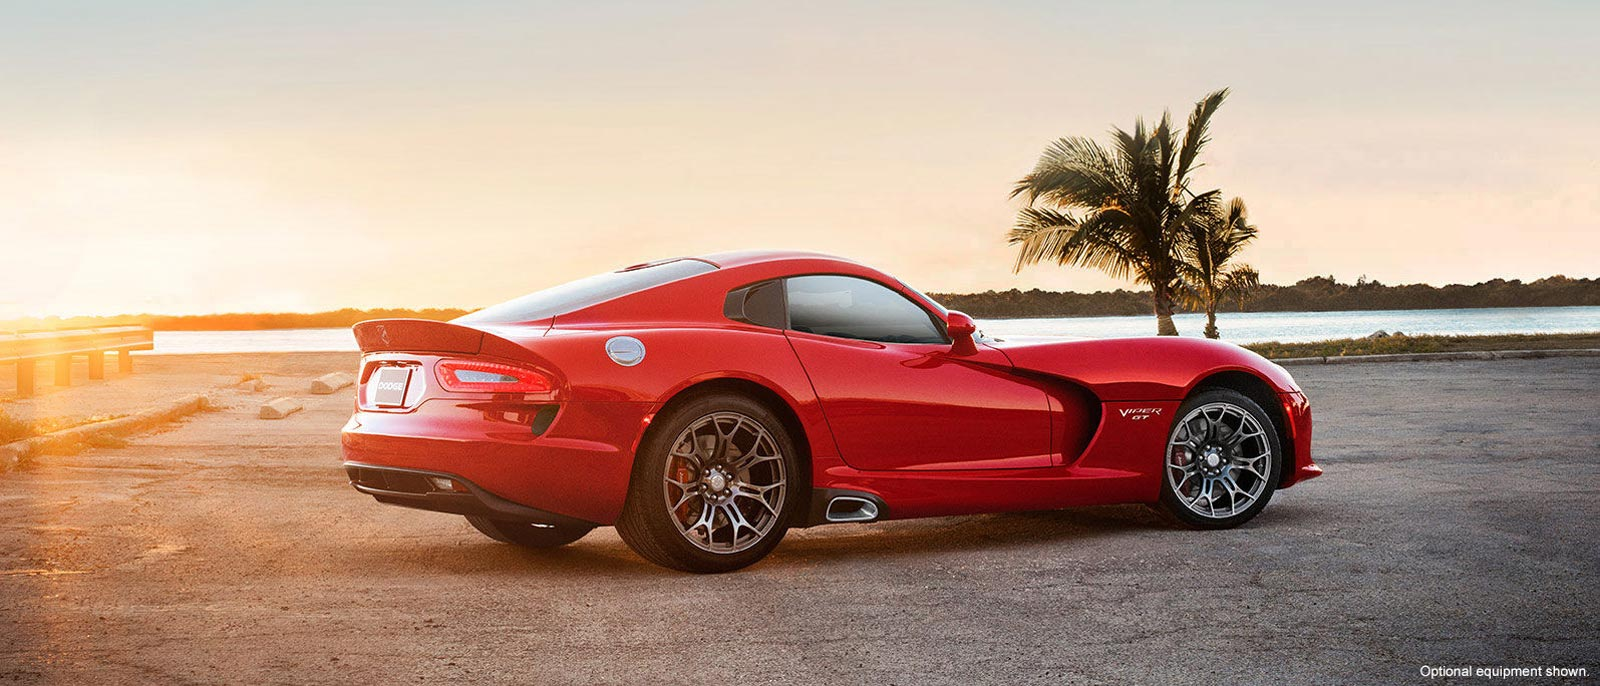 2015 Viper SRT side view